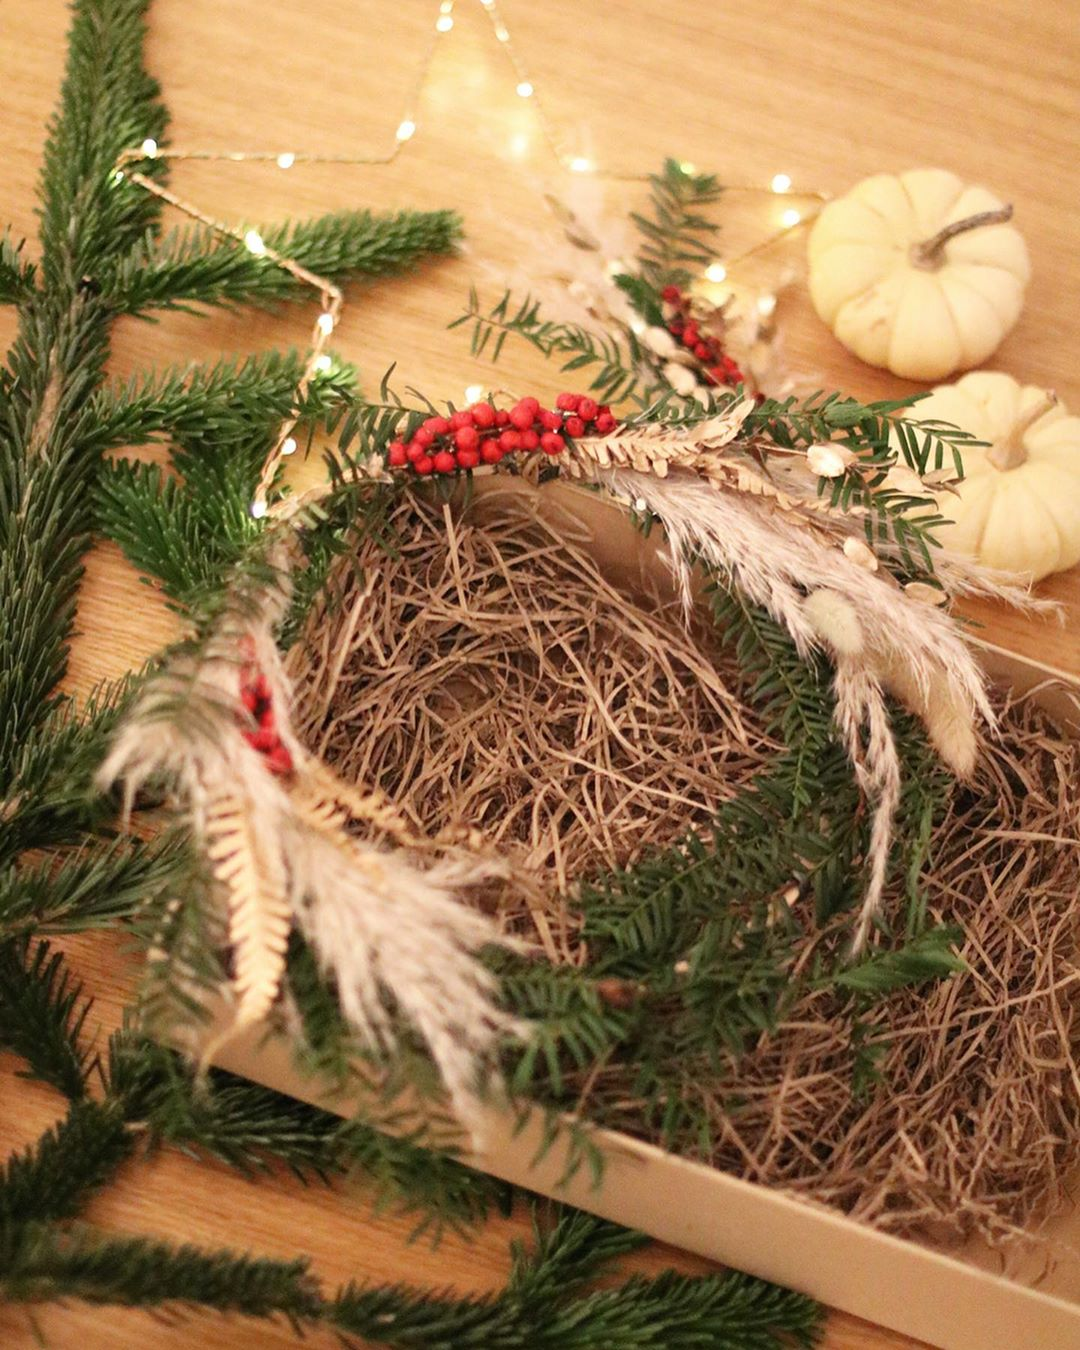 Christmas Chest to Welcoming Guests (3)